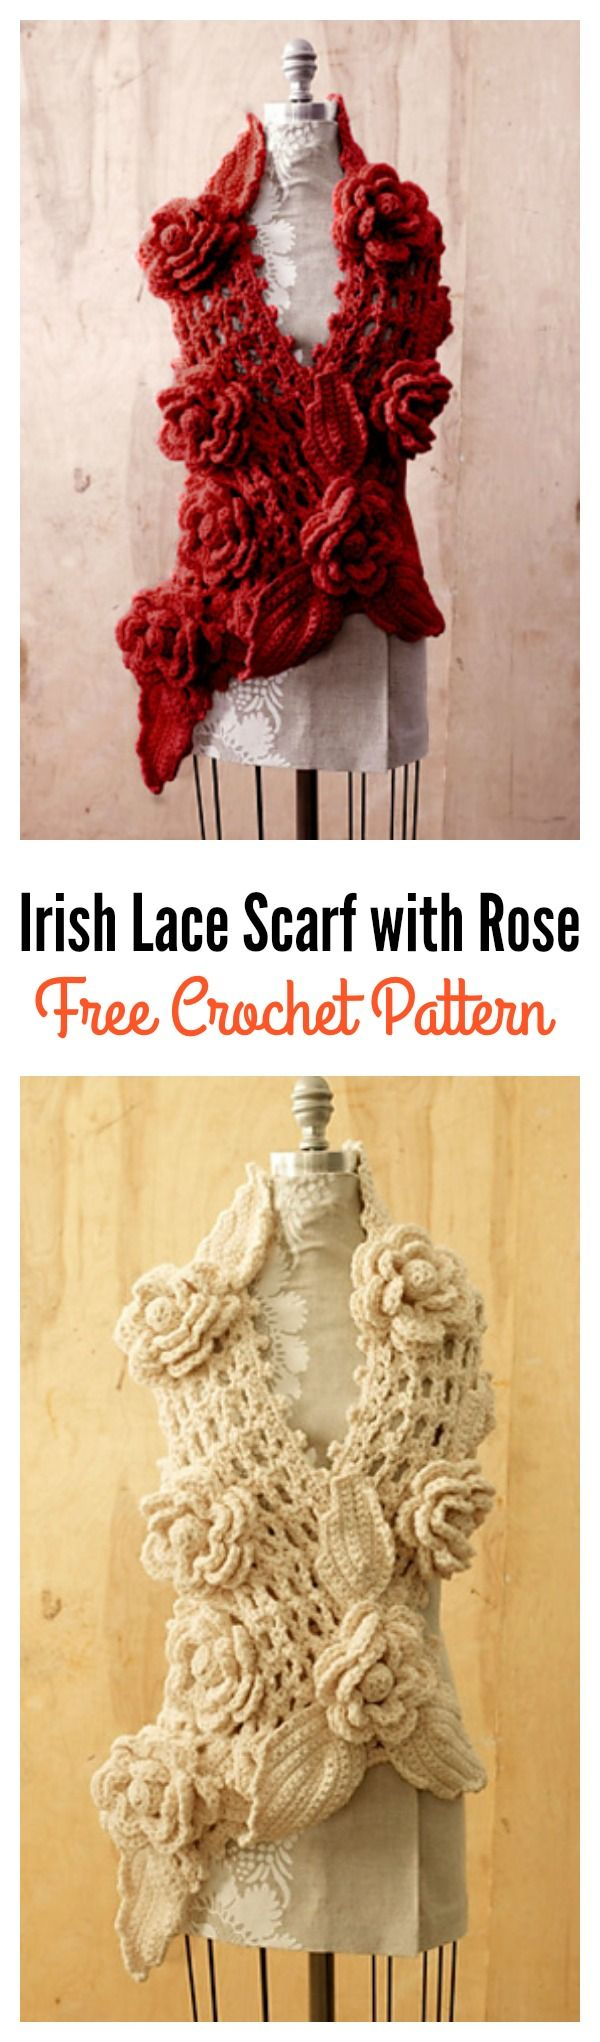 100 ideas to try about stolas haken free pattern valentines crochet irish lace scarf with rose free pattern bankloansurffo Gallery